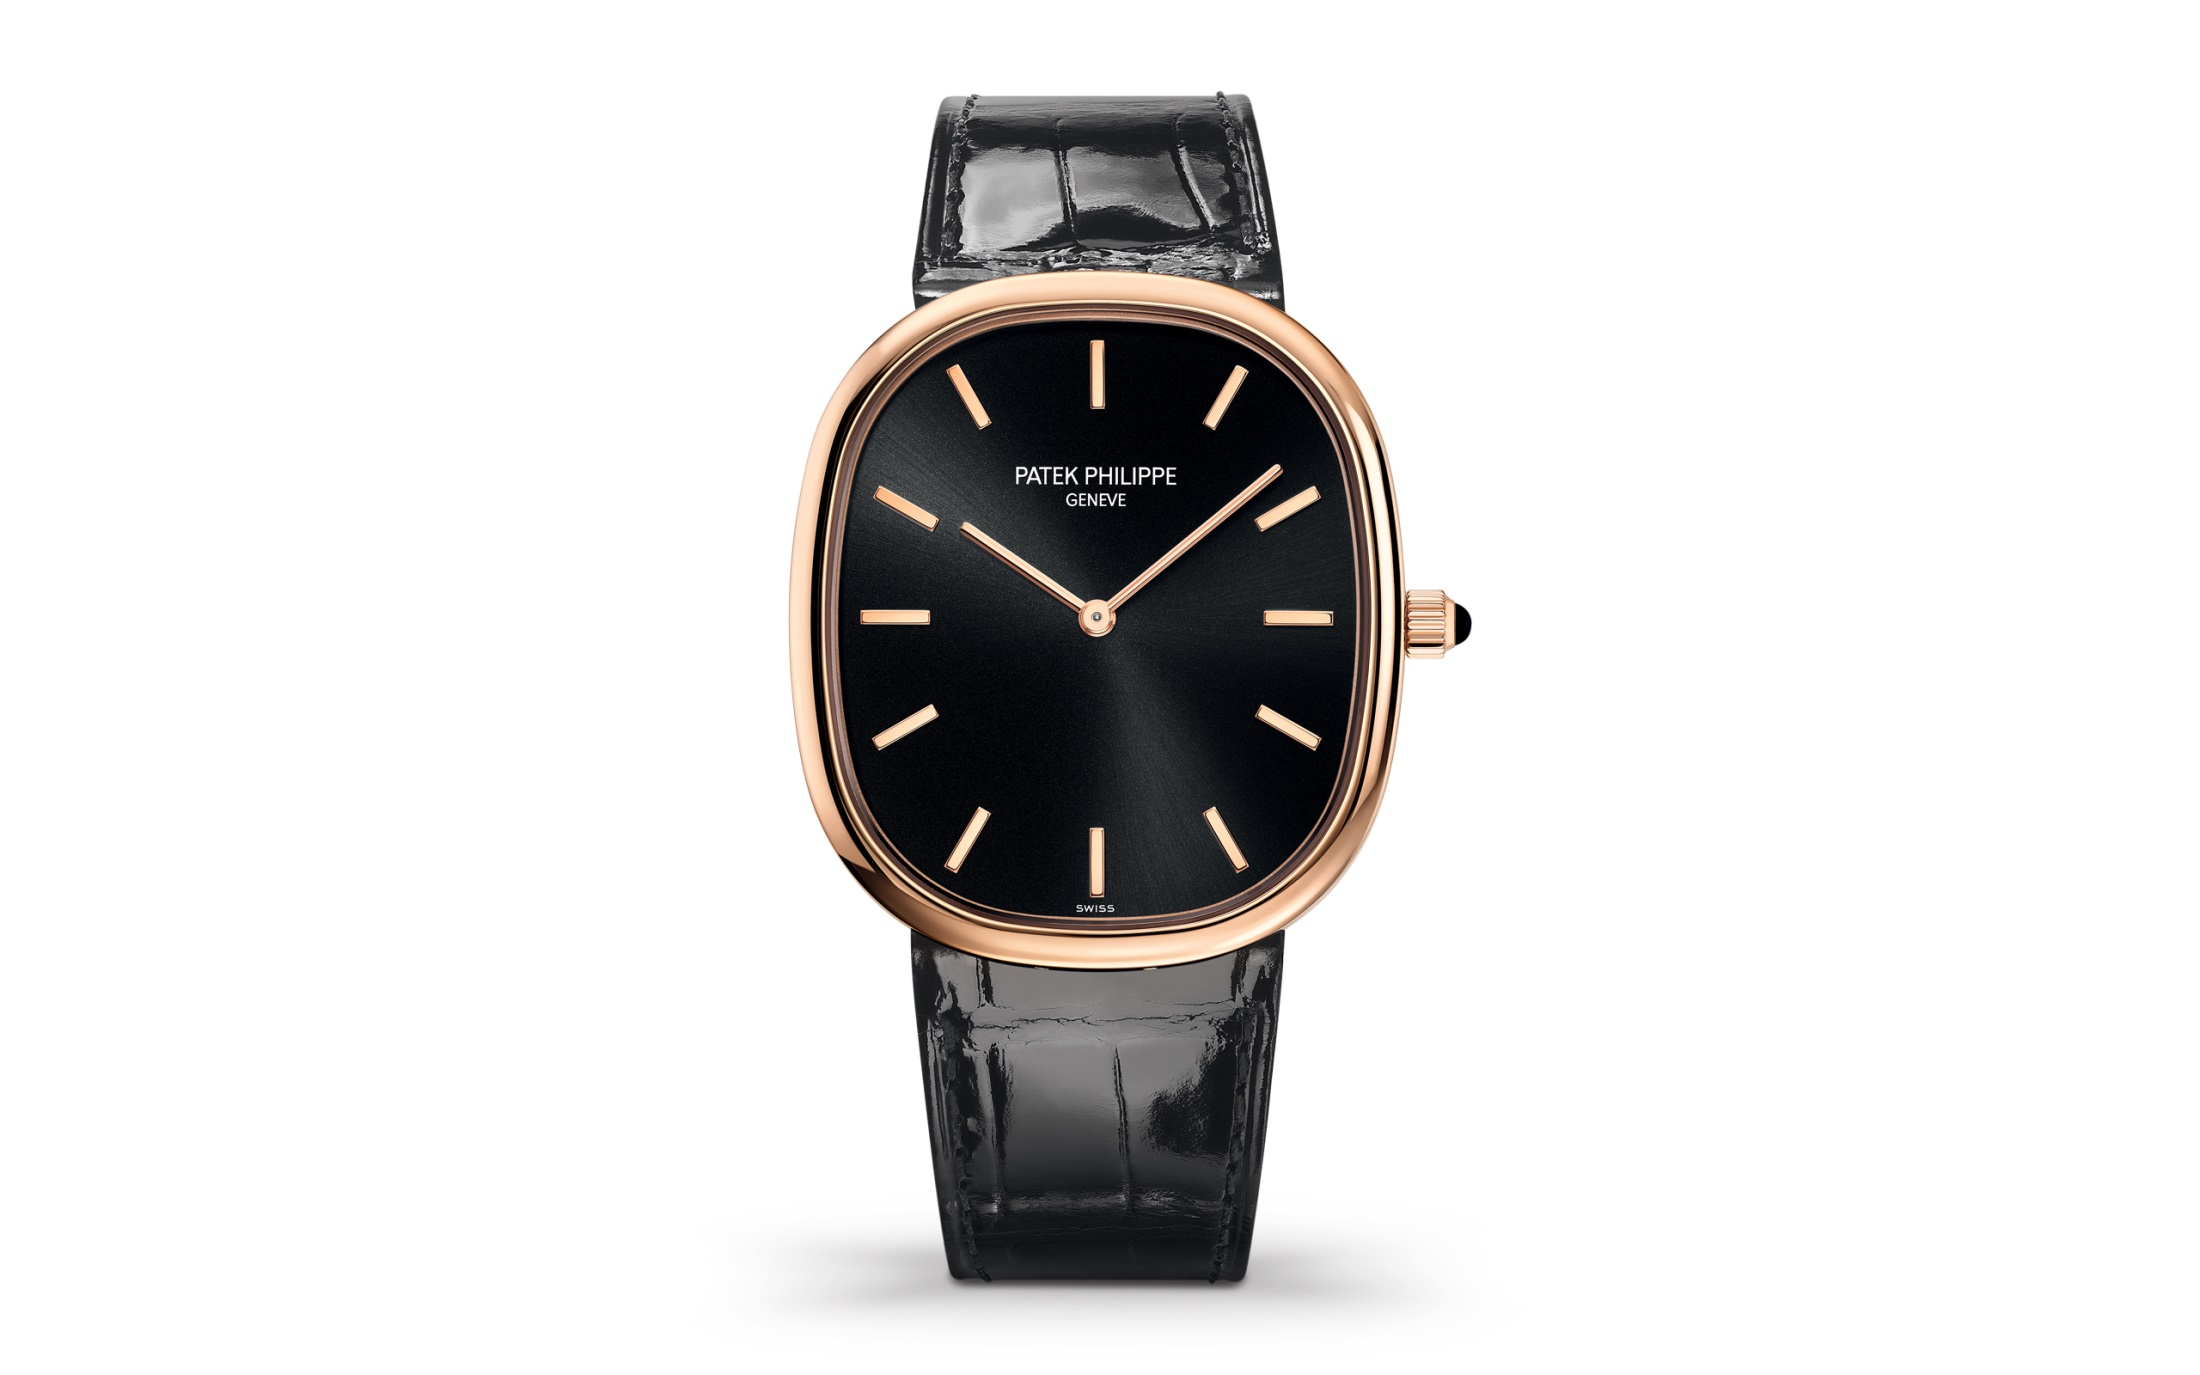 Gold hour markers fitted on the black dial make the watch fascinating.